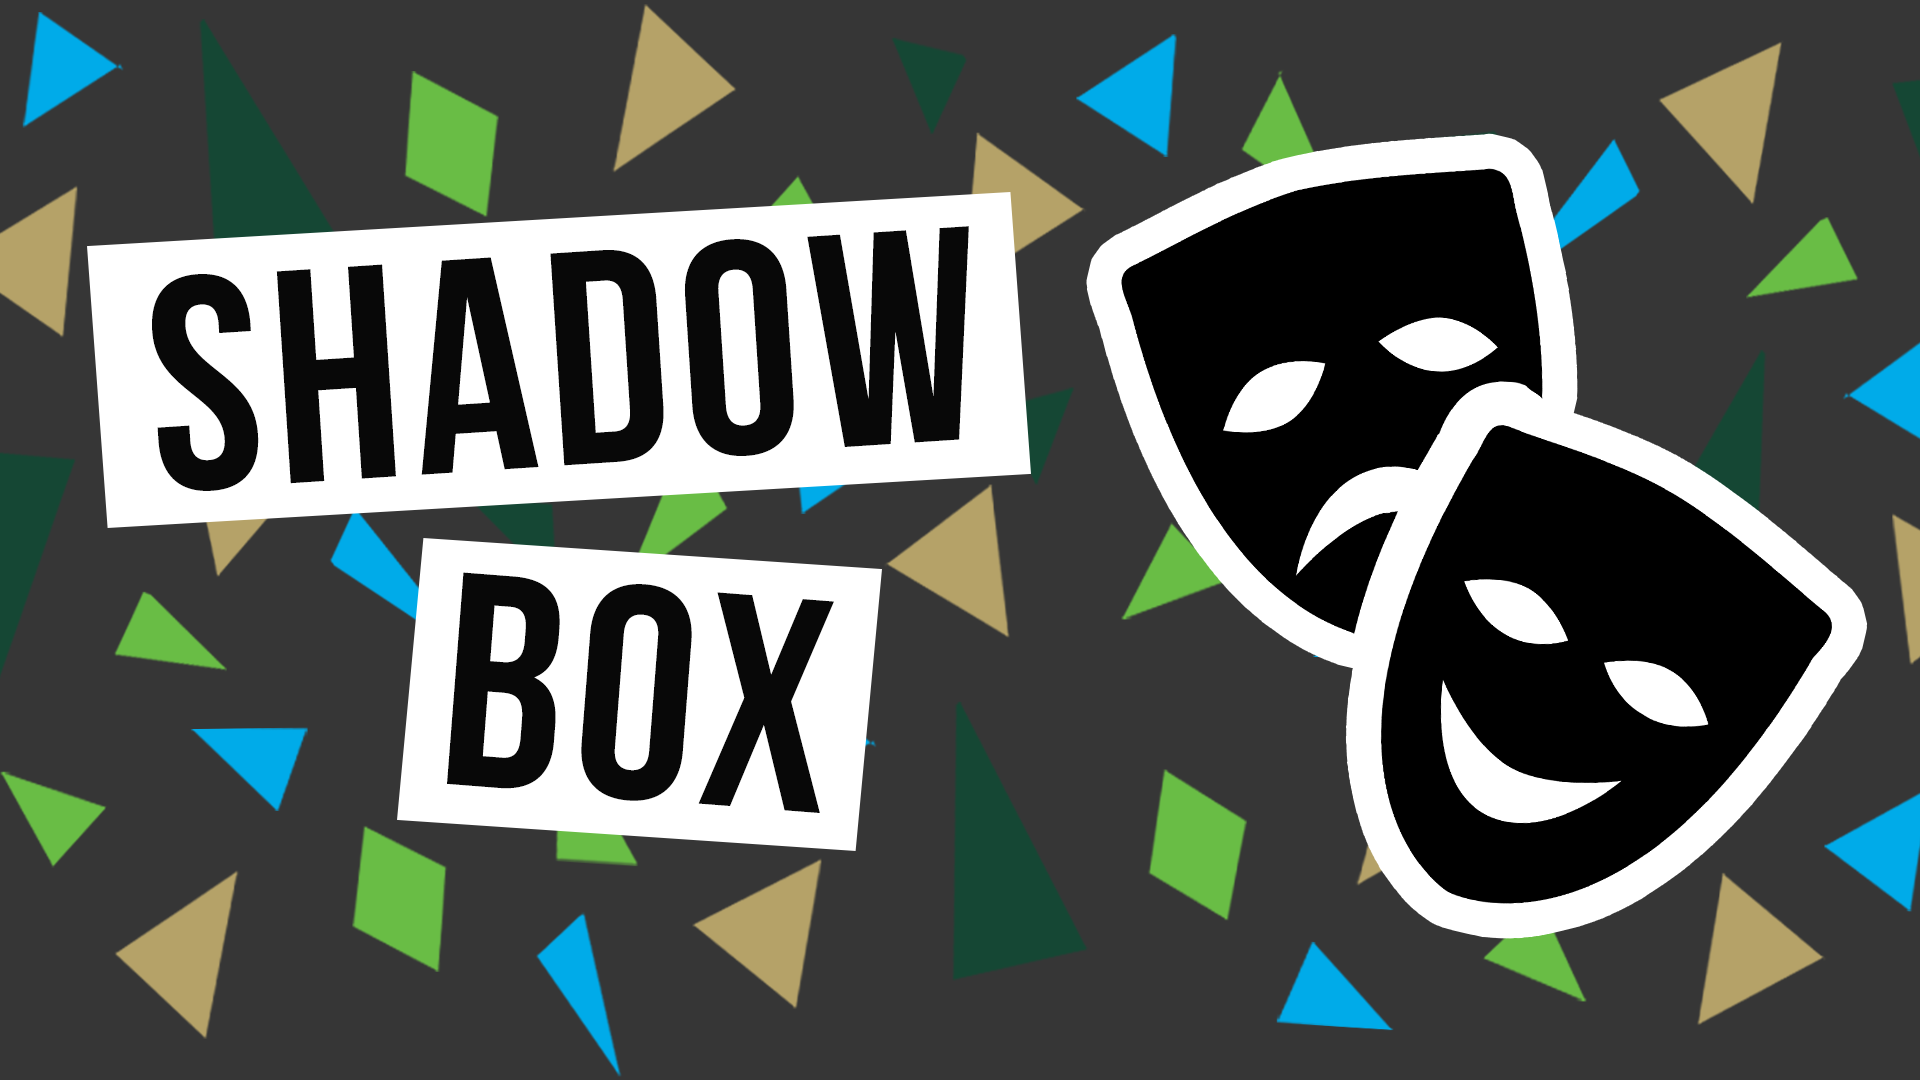 THE SHADOW BOX - PC TALK